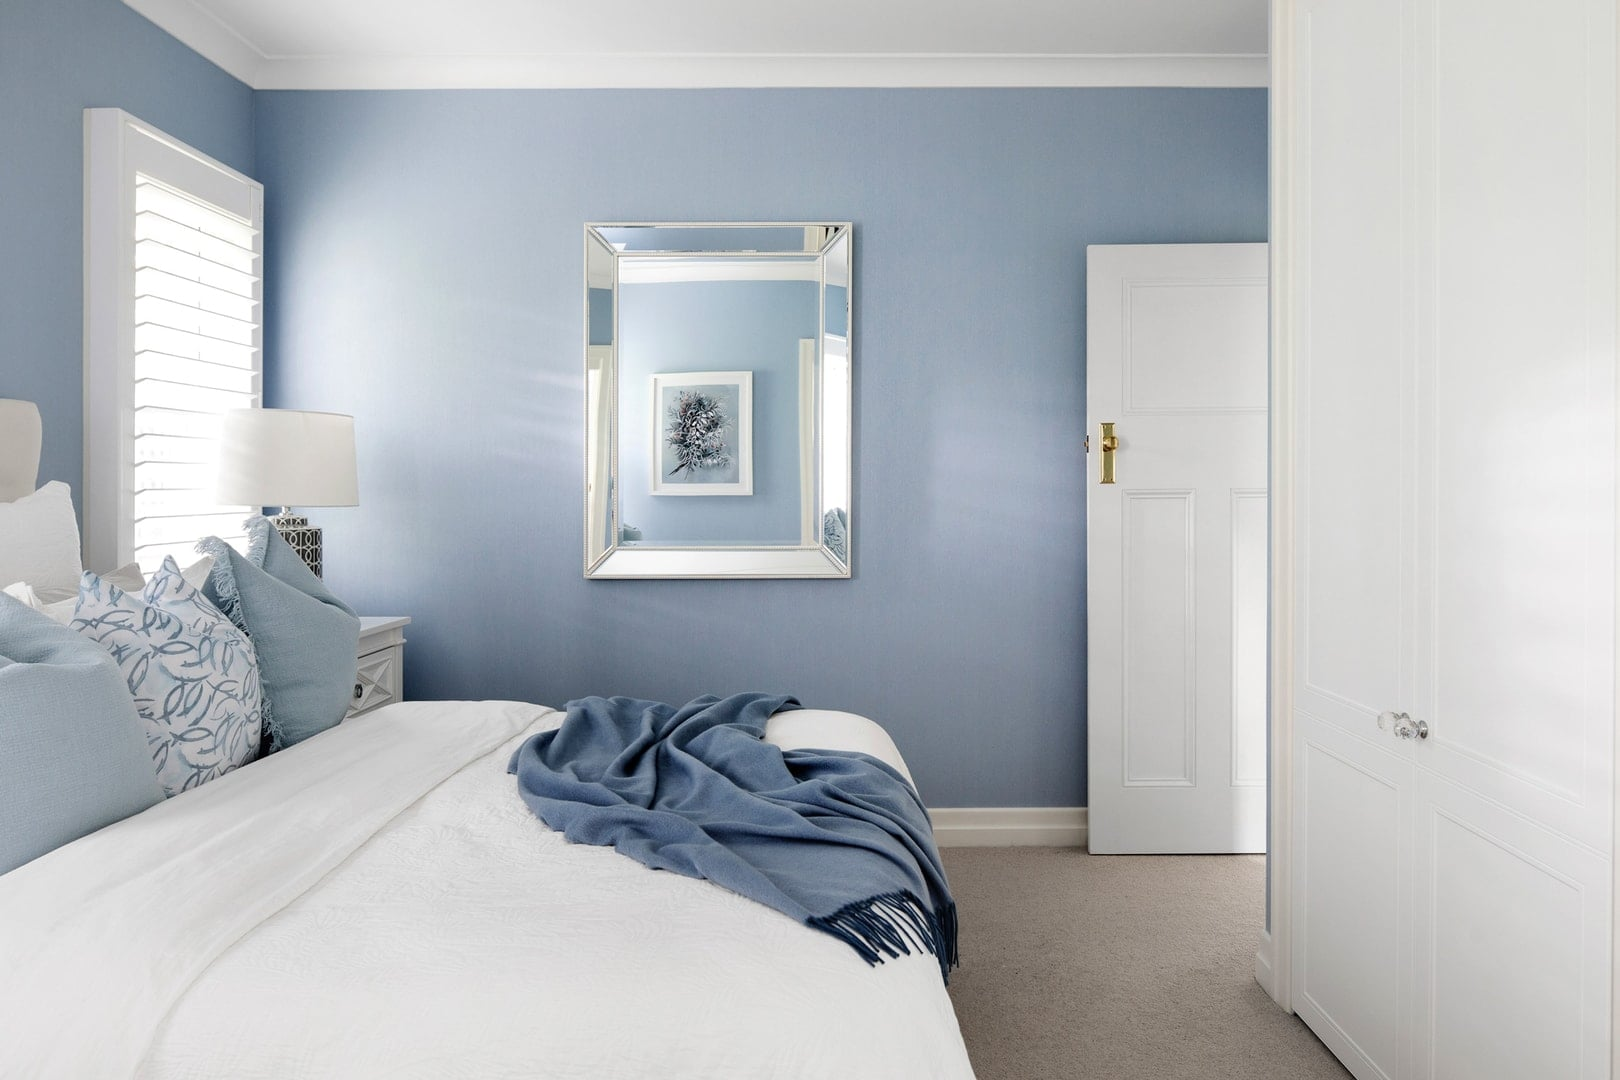 hamptons-bedroom-with-blue-wallpaper-and-white-plantation-shutters